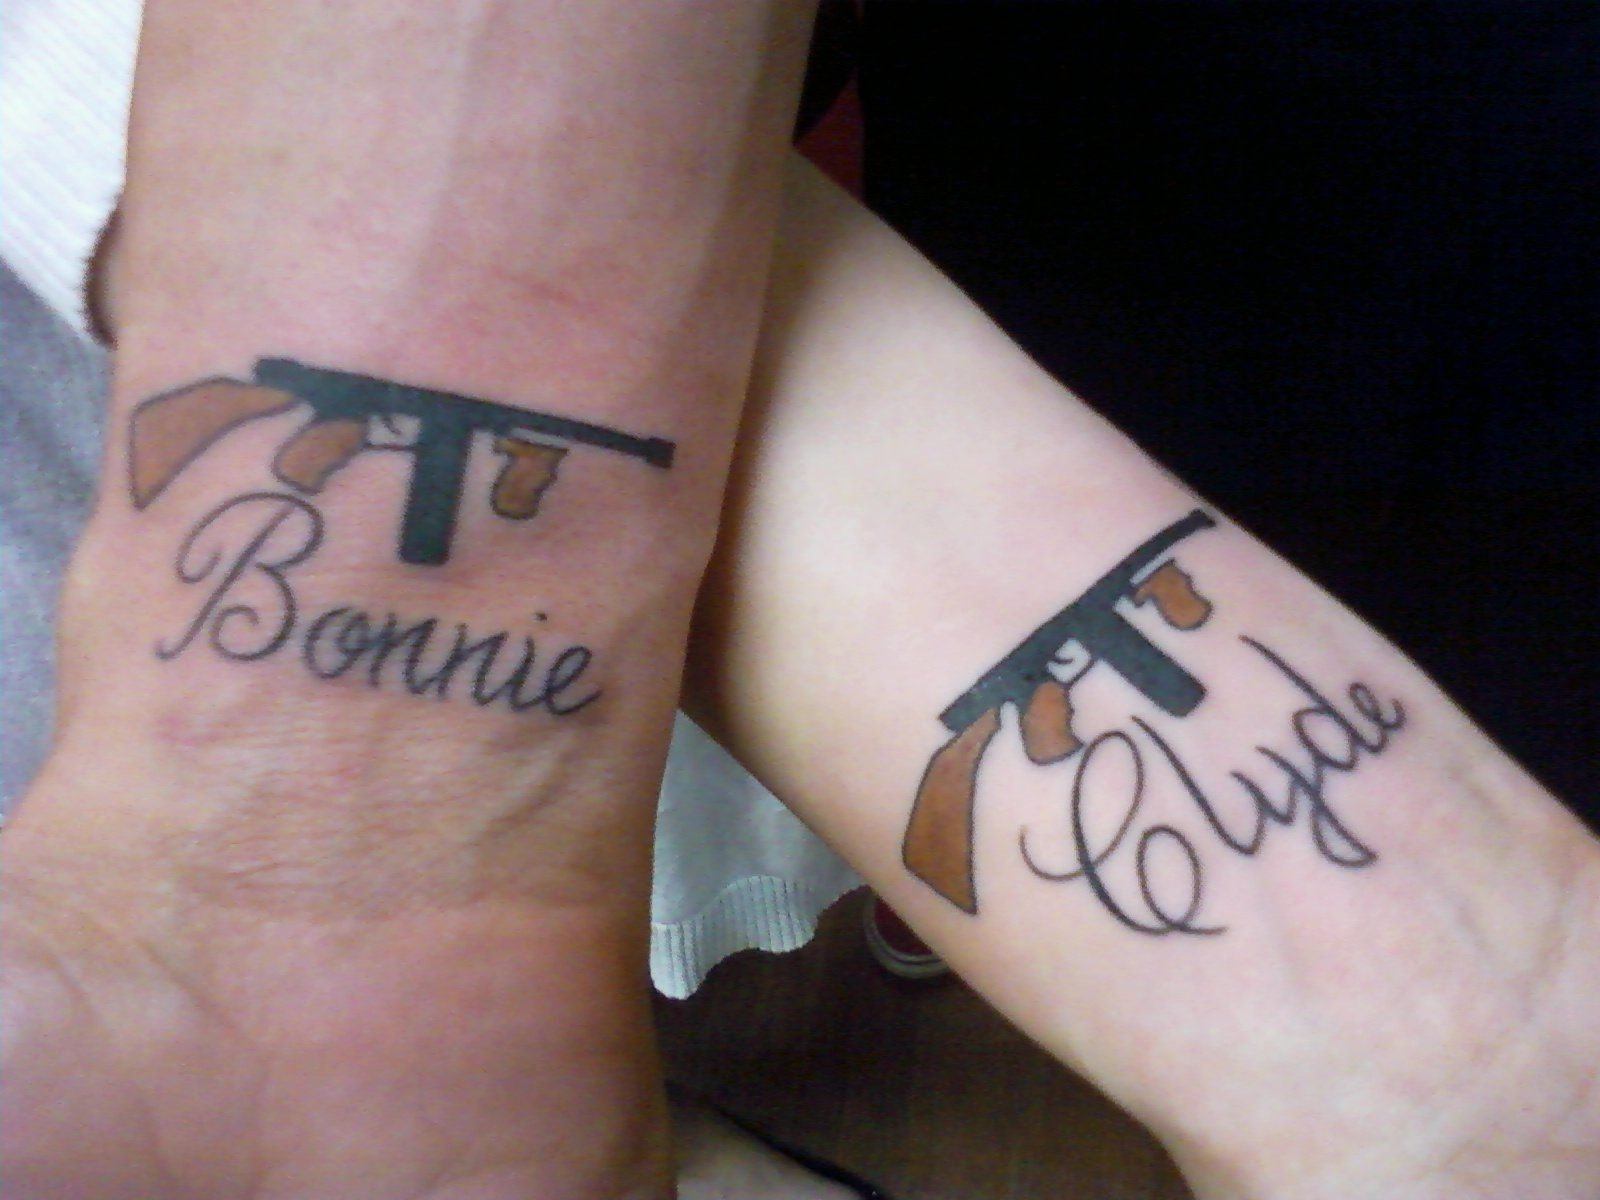 10 Pretty Boyfriend And Girlfriend Matching Tattoos Ideas bonnie and clyde couples tattoo got this tattoo after just a few 2 2020